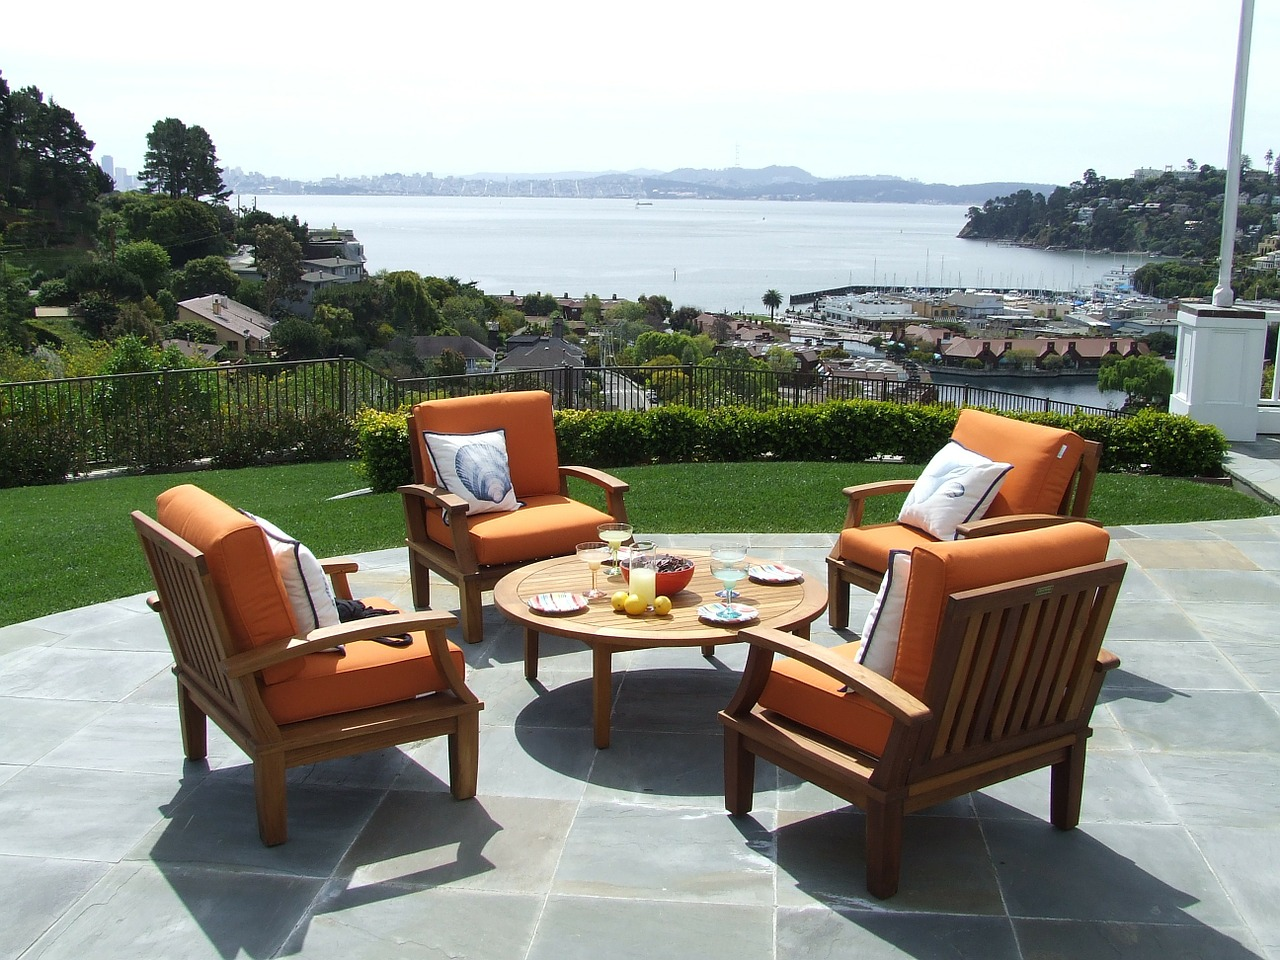 Top 3 Tips For Cleaning Outdoor U0026 Patio Furniture